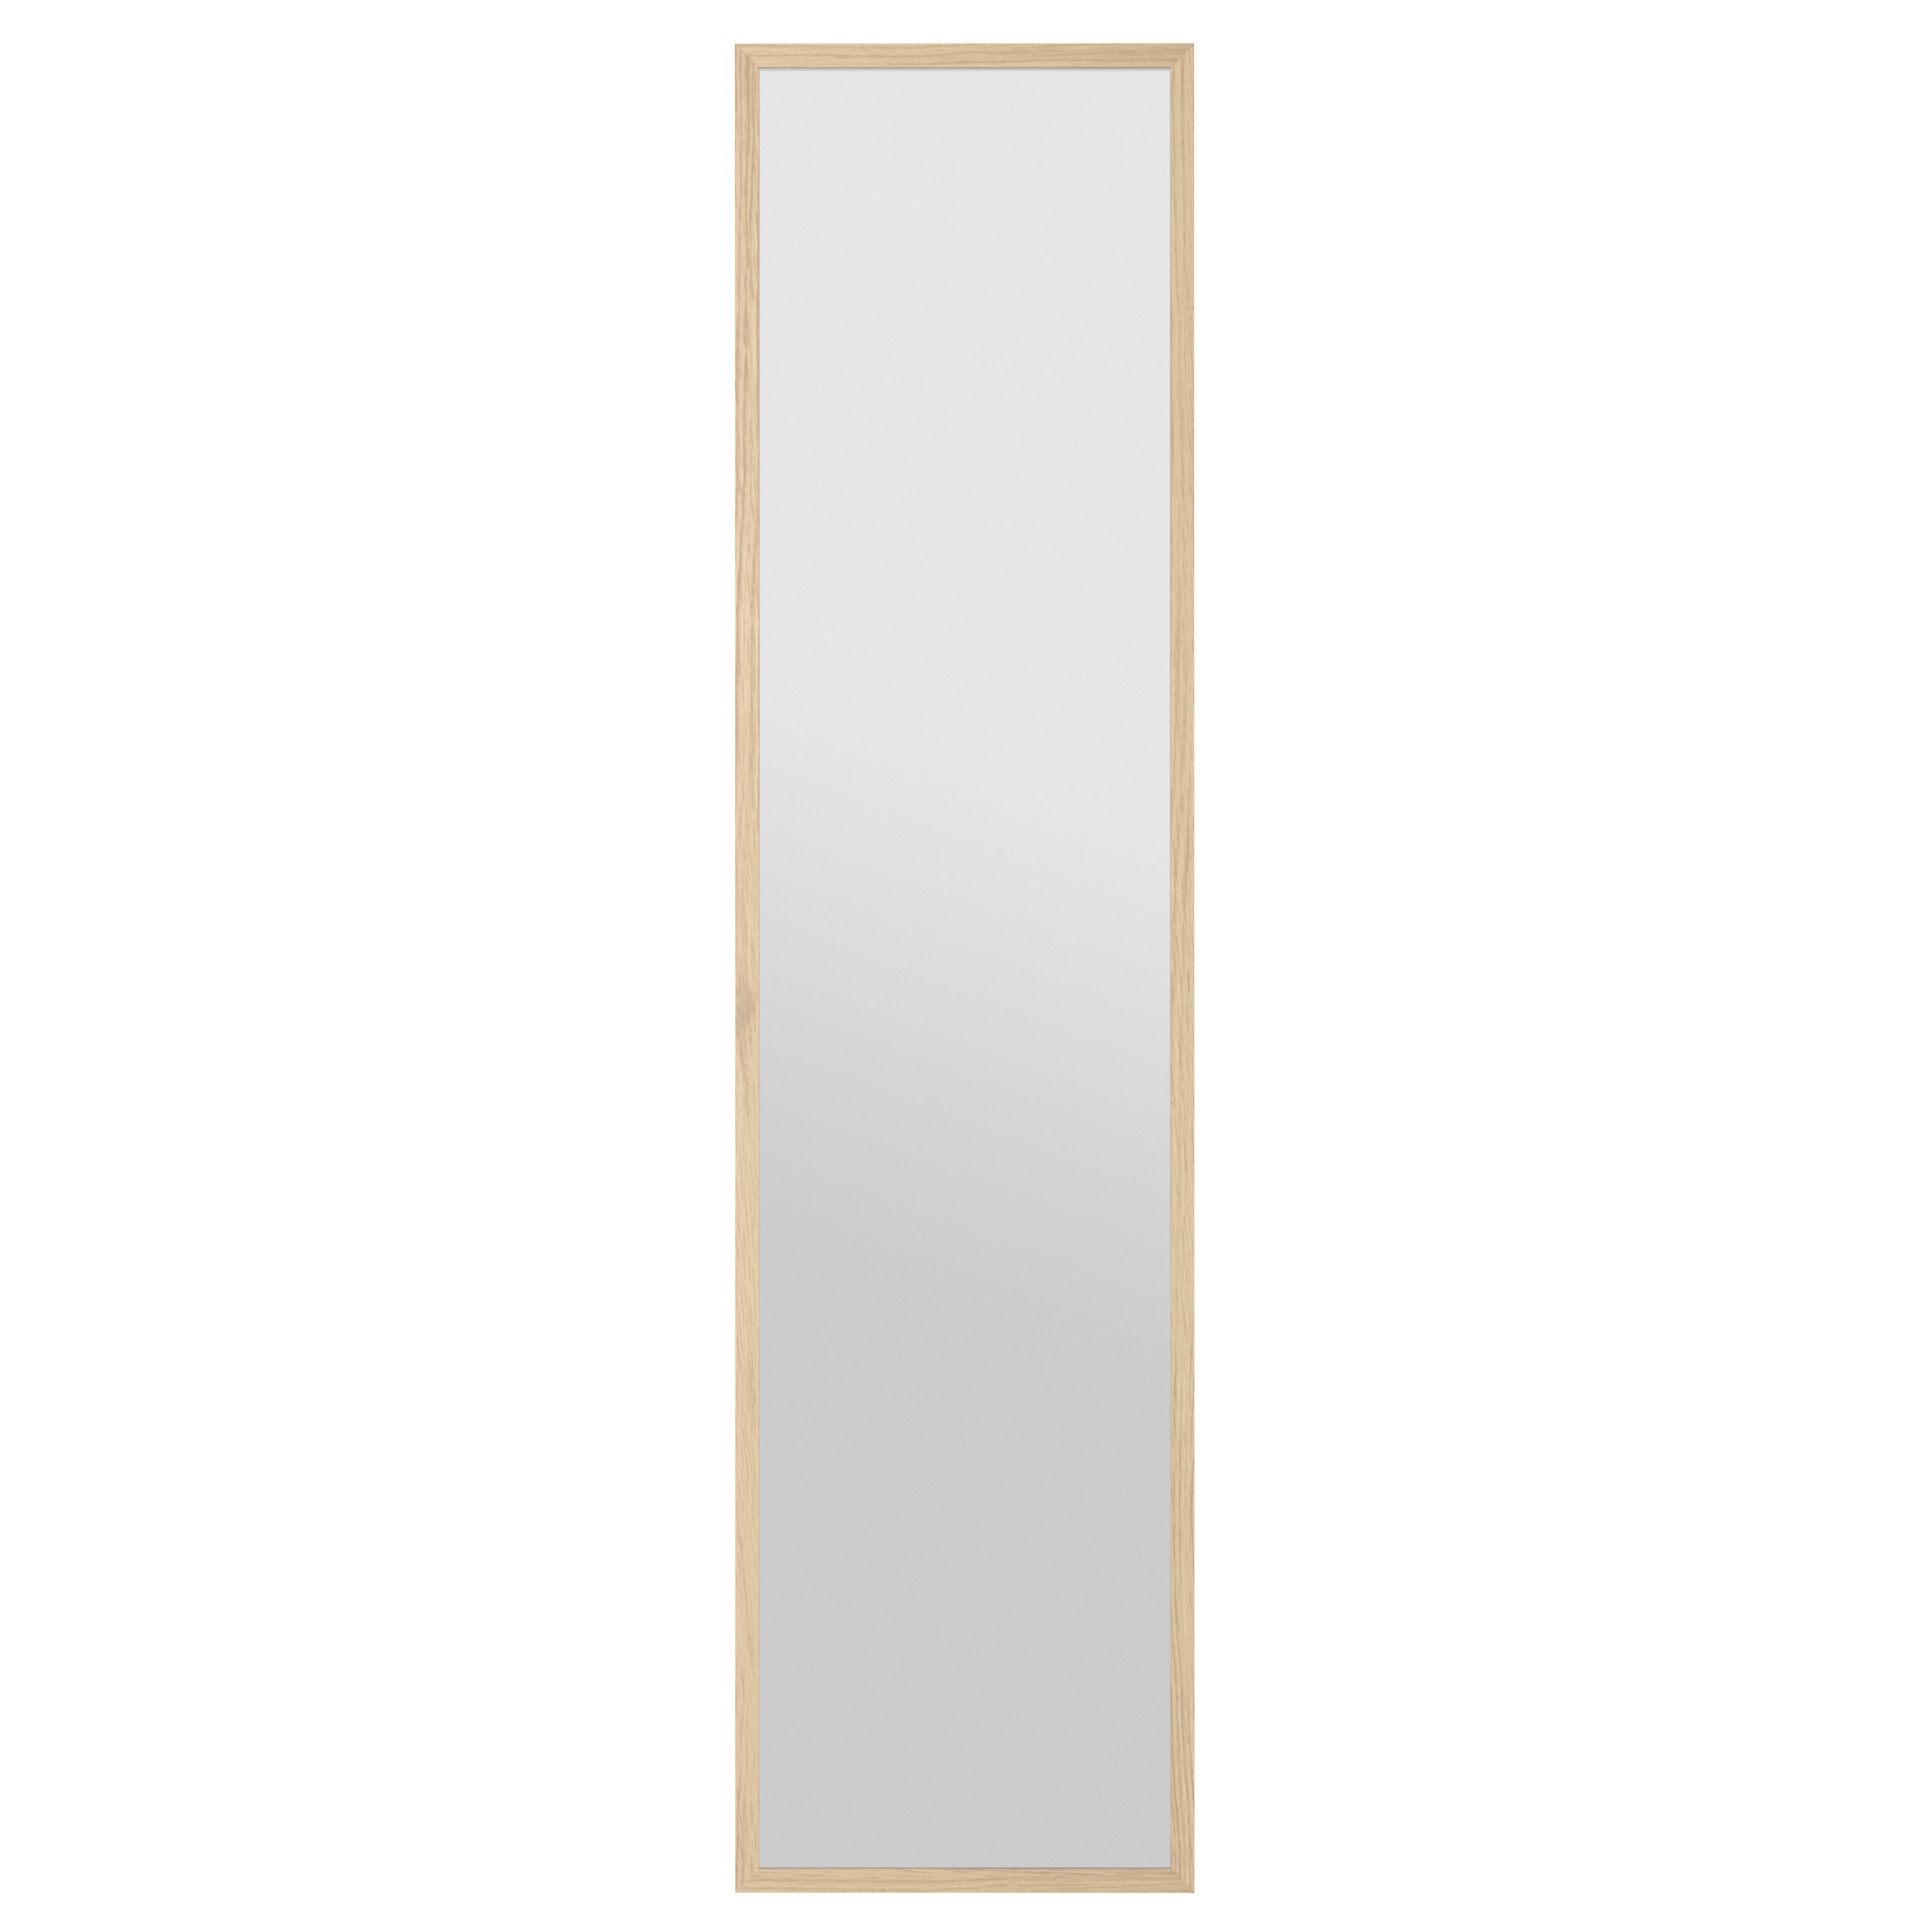 Charming Ideas Long Wall Mirror Trendy Design Silver Long Wall Pertaining To Long Silver Wall Mirror (Image 2 of 15)